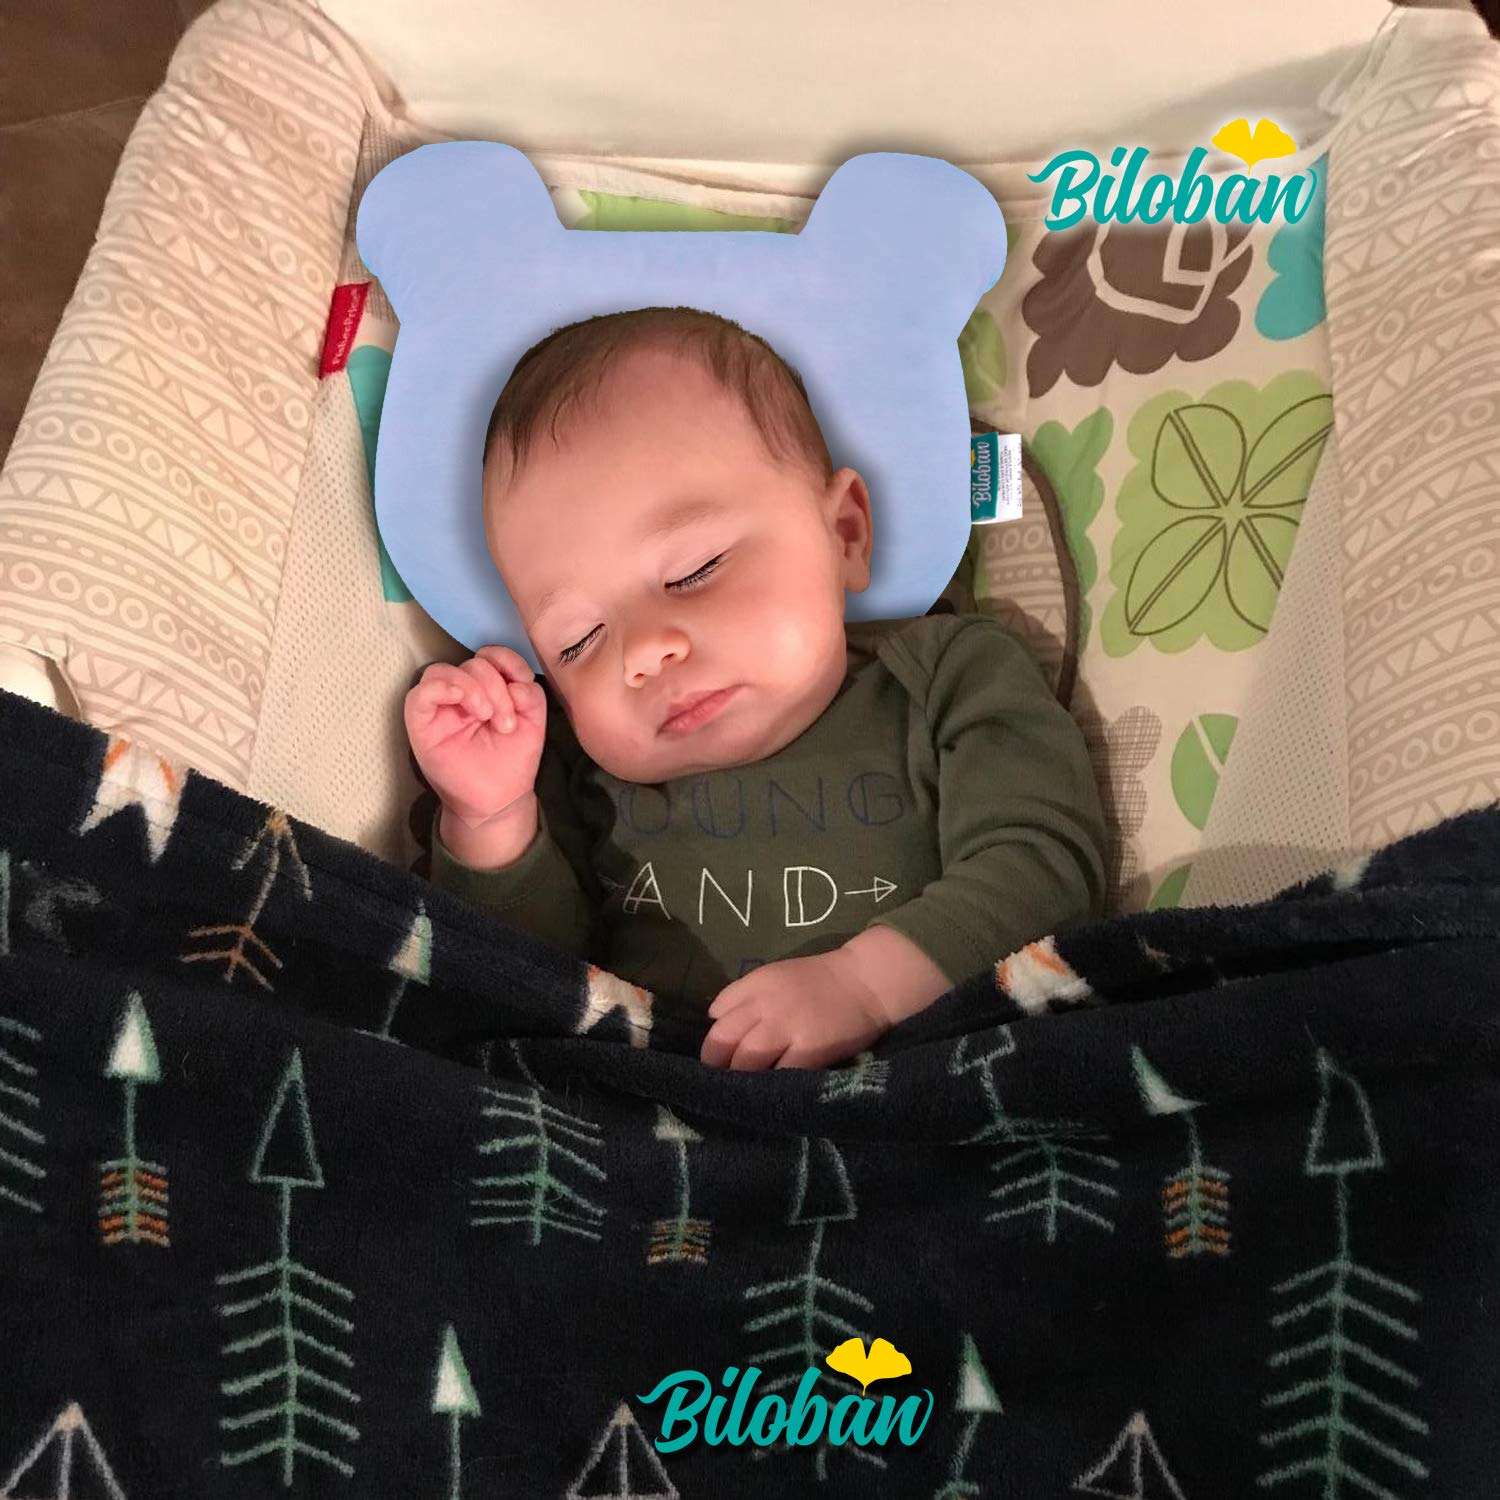 Blue Breathable Infant Pillows for Flat Head with Soft Jersey /& Muslin Fabric,Bear Design Head Shaping Pillow for Infant Newborn Pillow for Sleeping